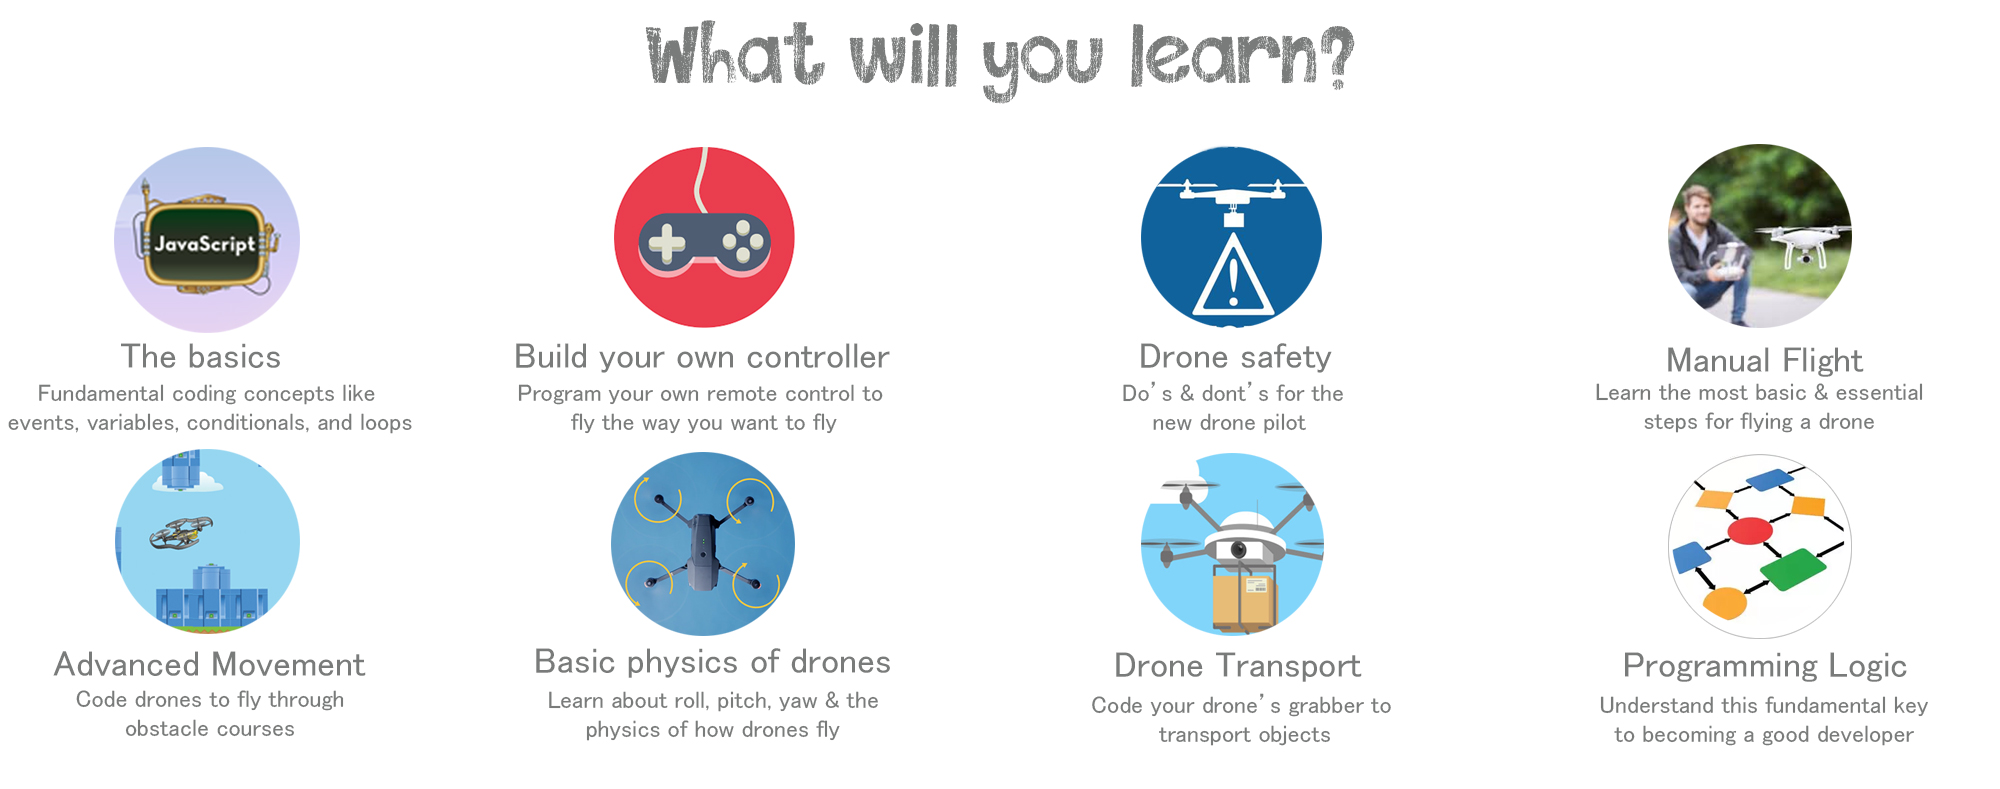 drone-coding---what-will-you-learn.jpg